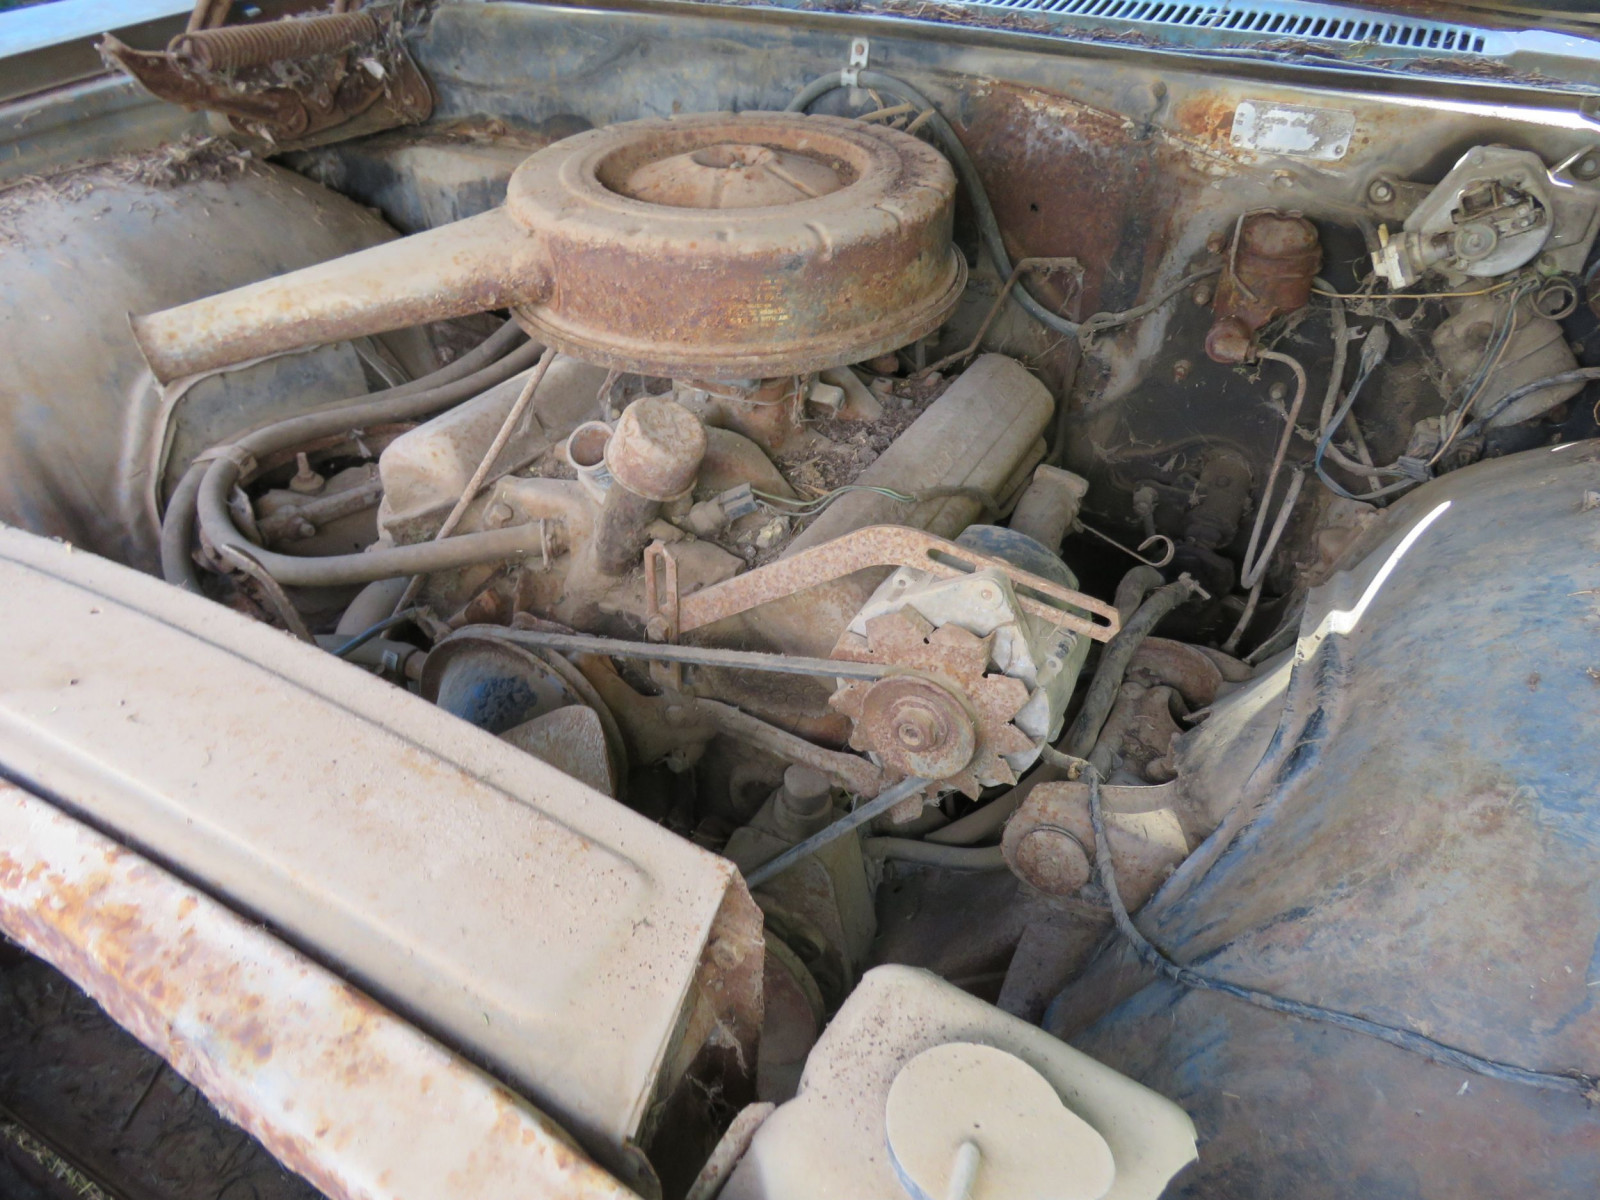 1966 Chevrolet Impala 4dr HT for Project or Parts - Image 6